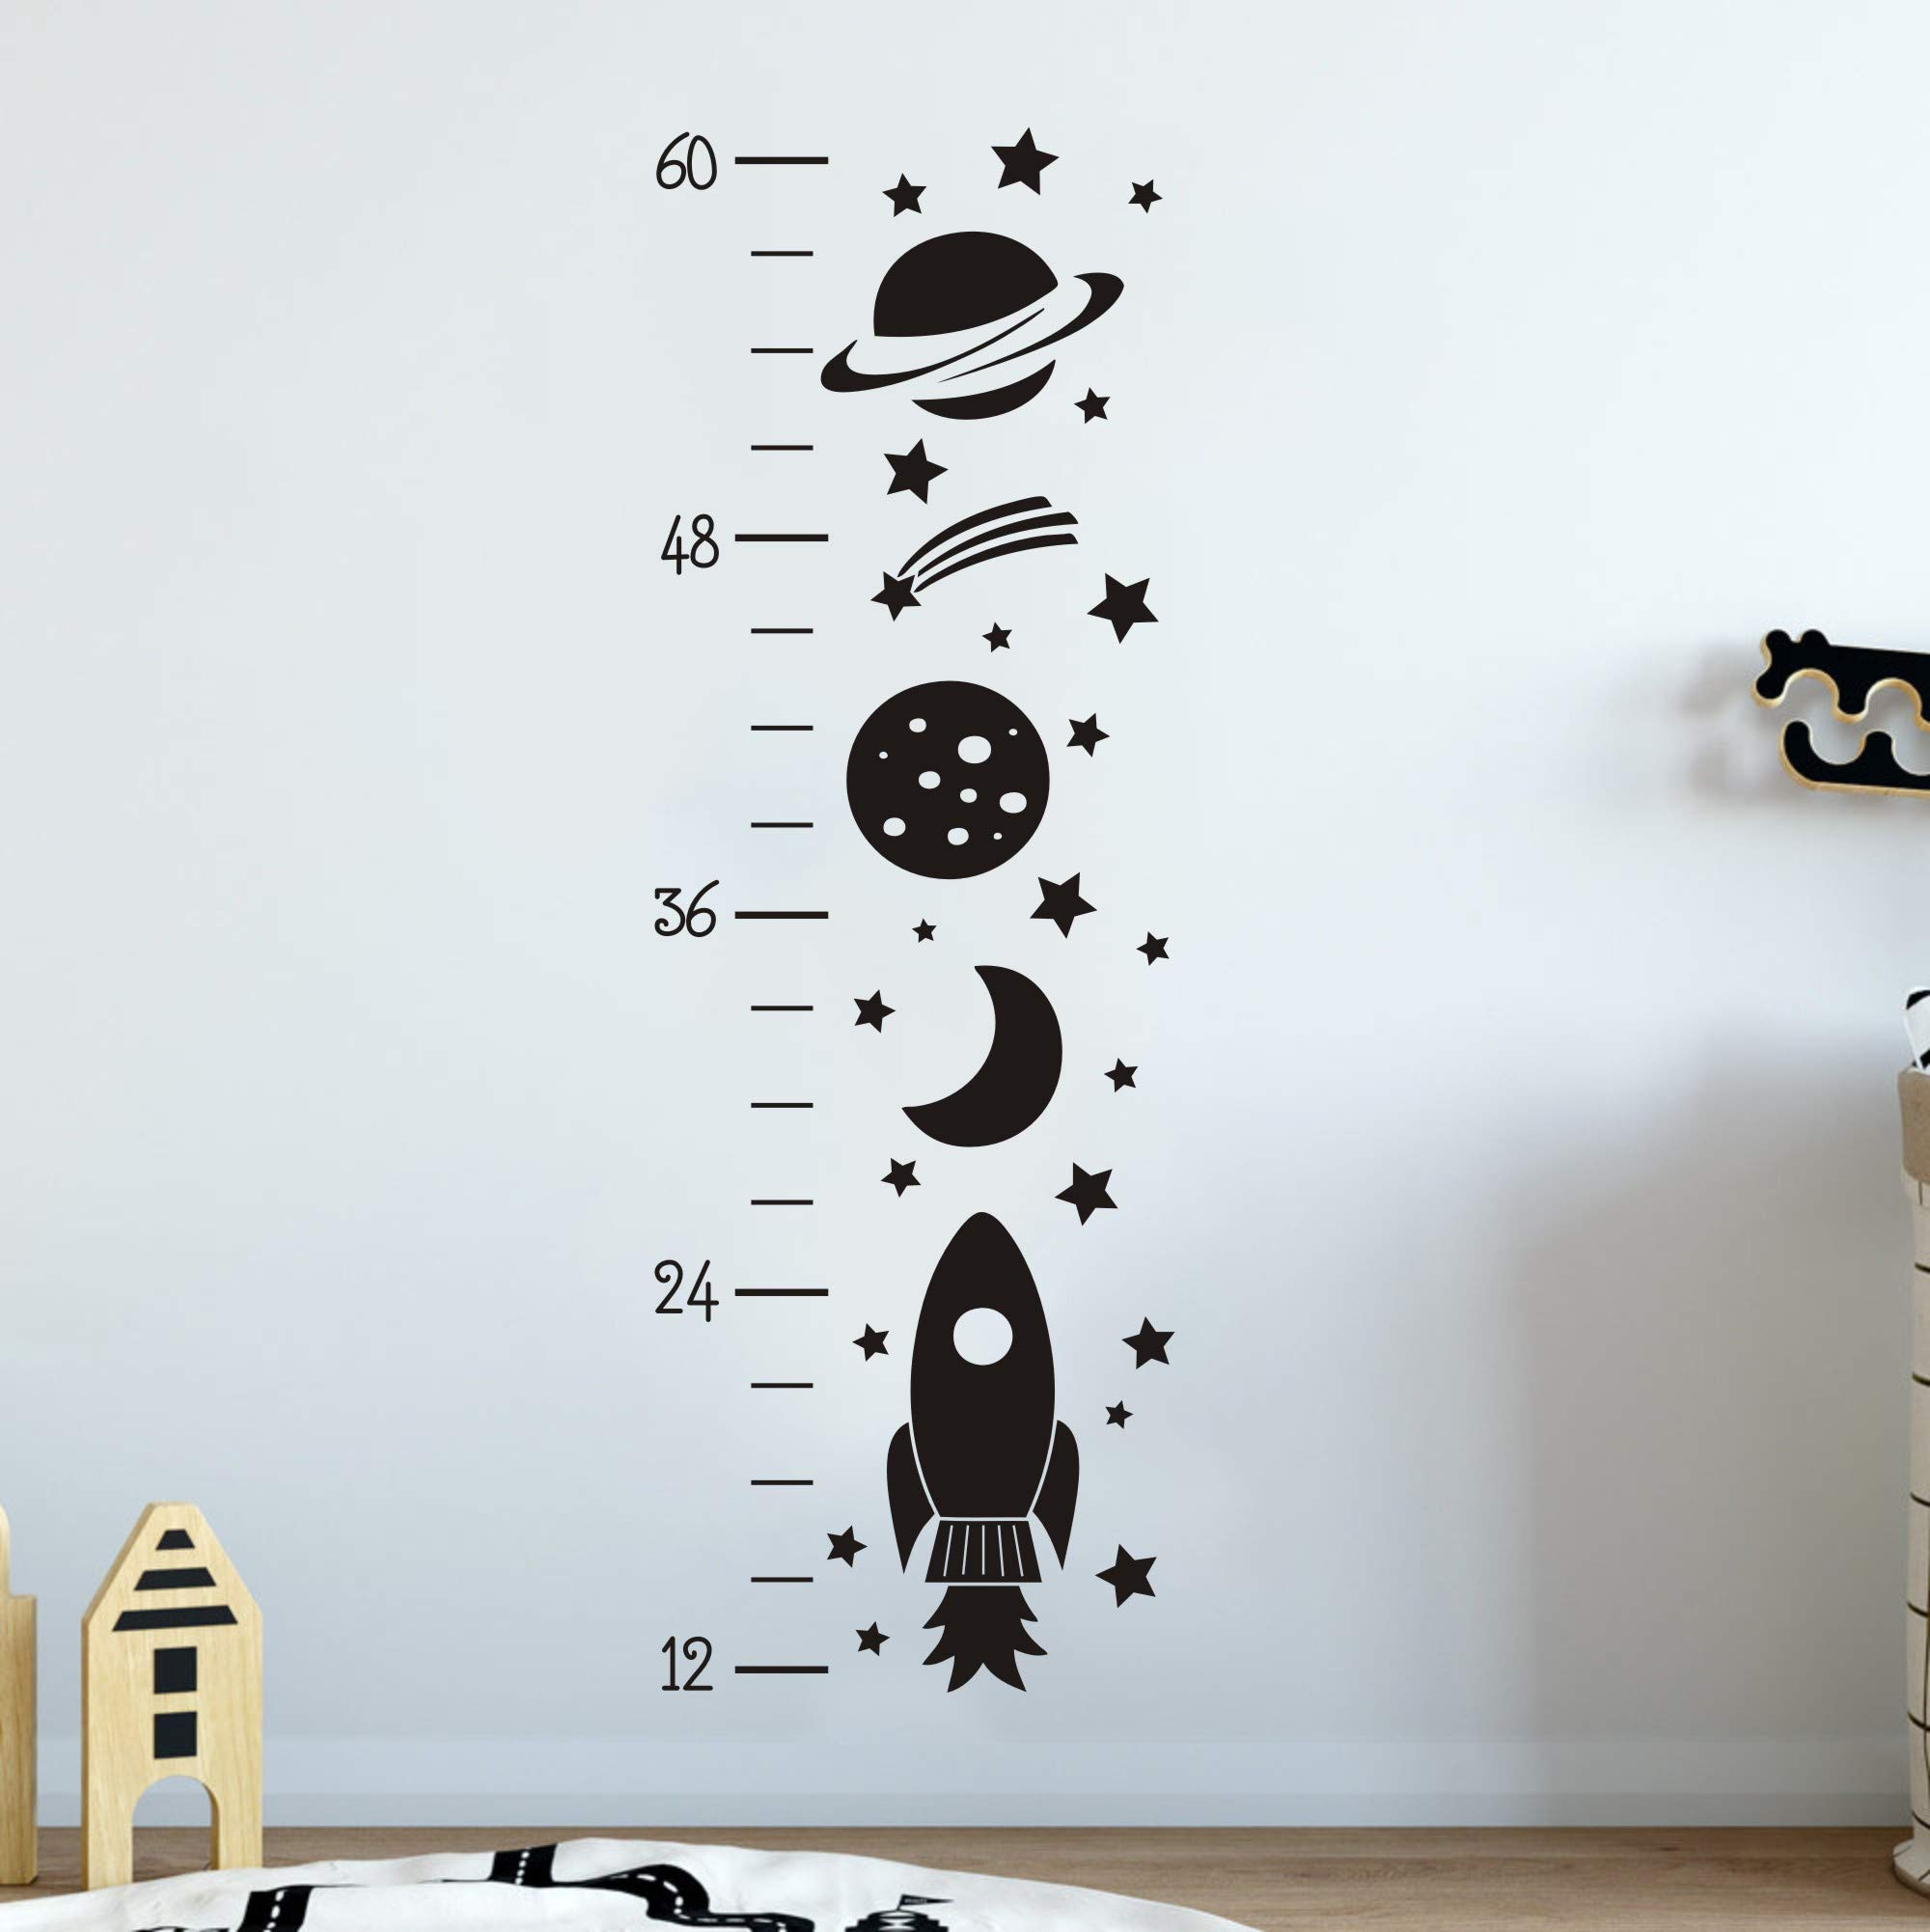 JURUOXIN Growth Chart Wall Decal Rocket Art Vinyl Removable Height Chart Stickers DIY Kids Boy Nursery Room Decoration YMX34 (Black)